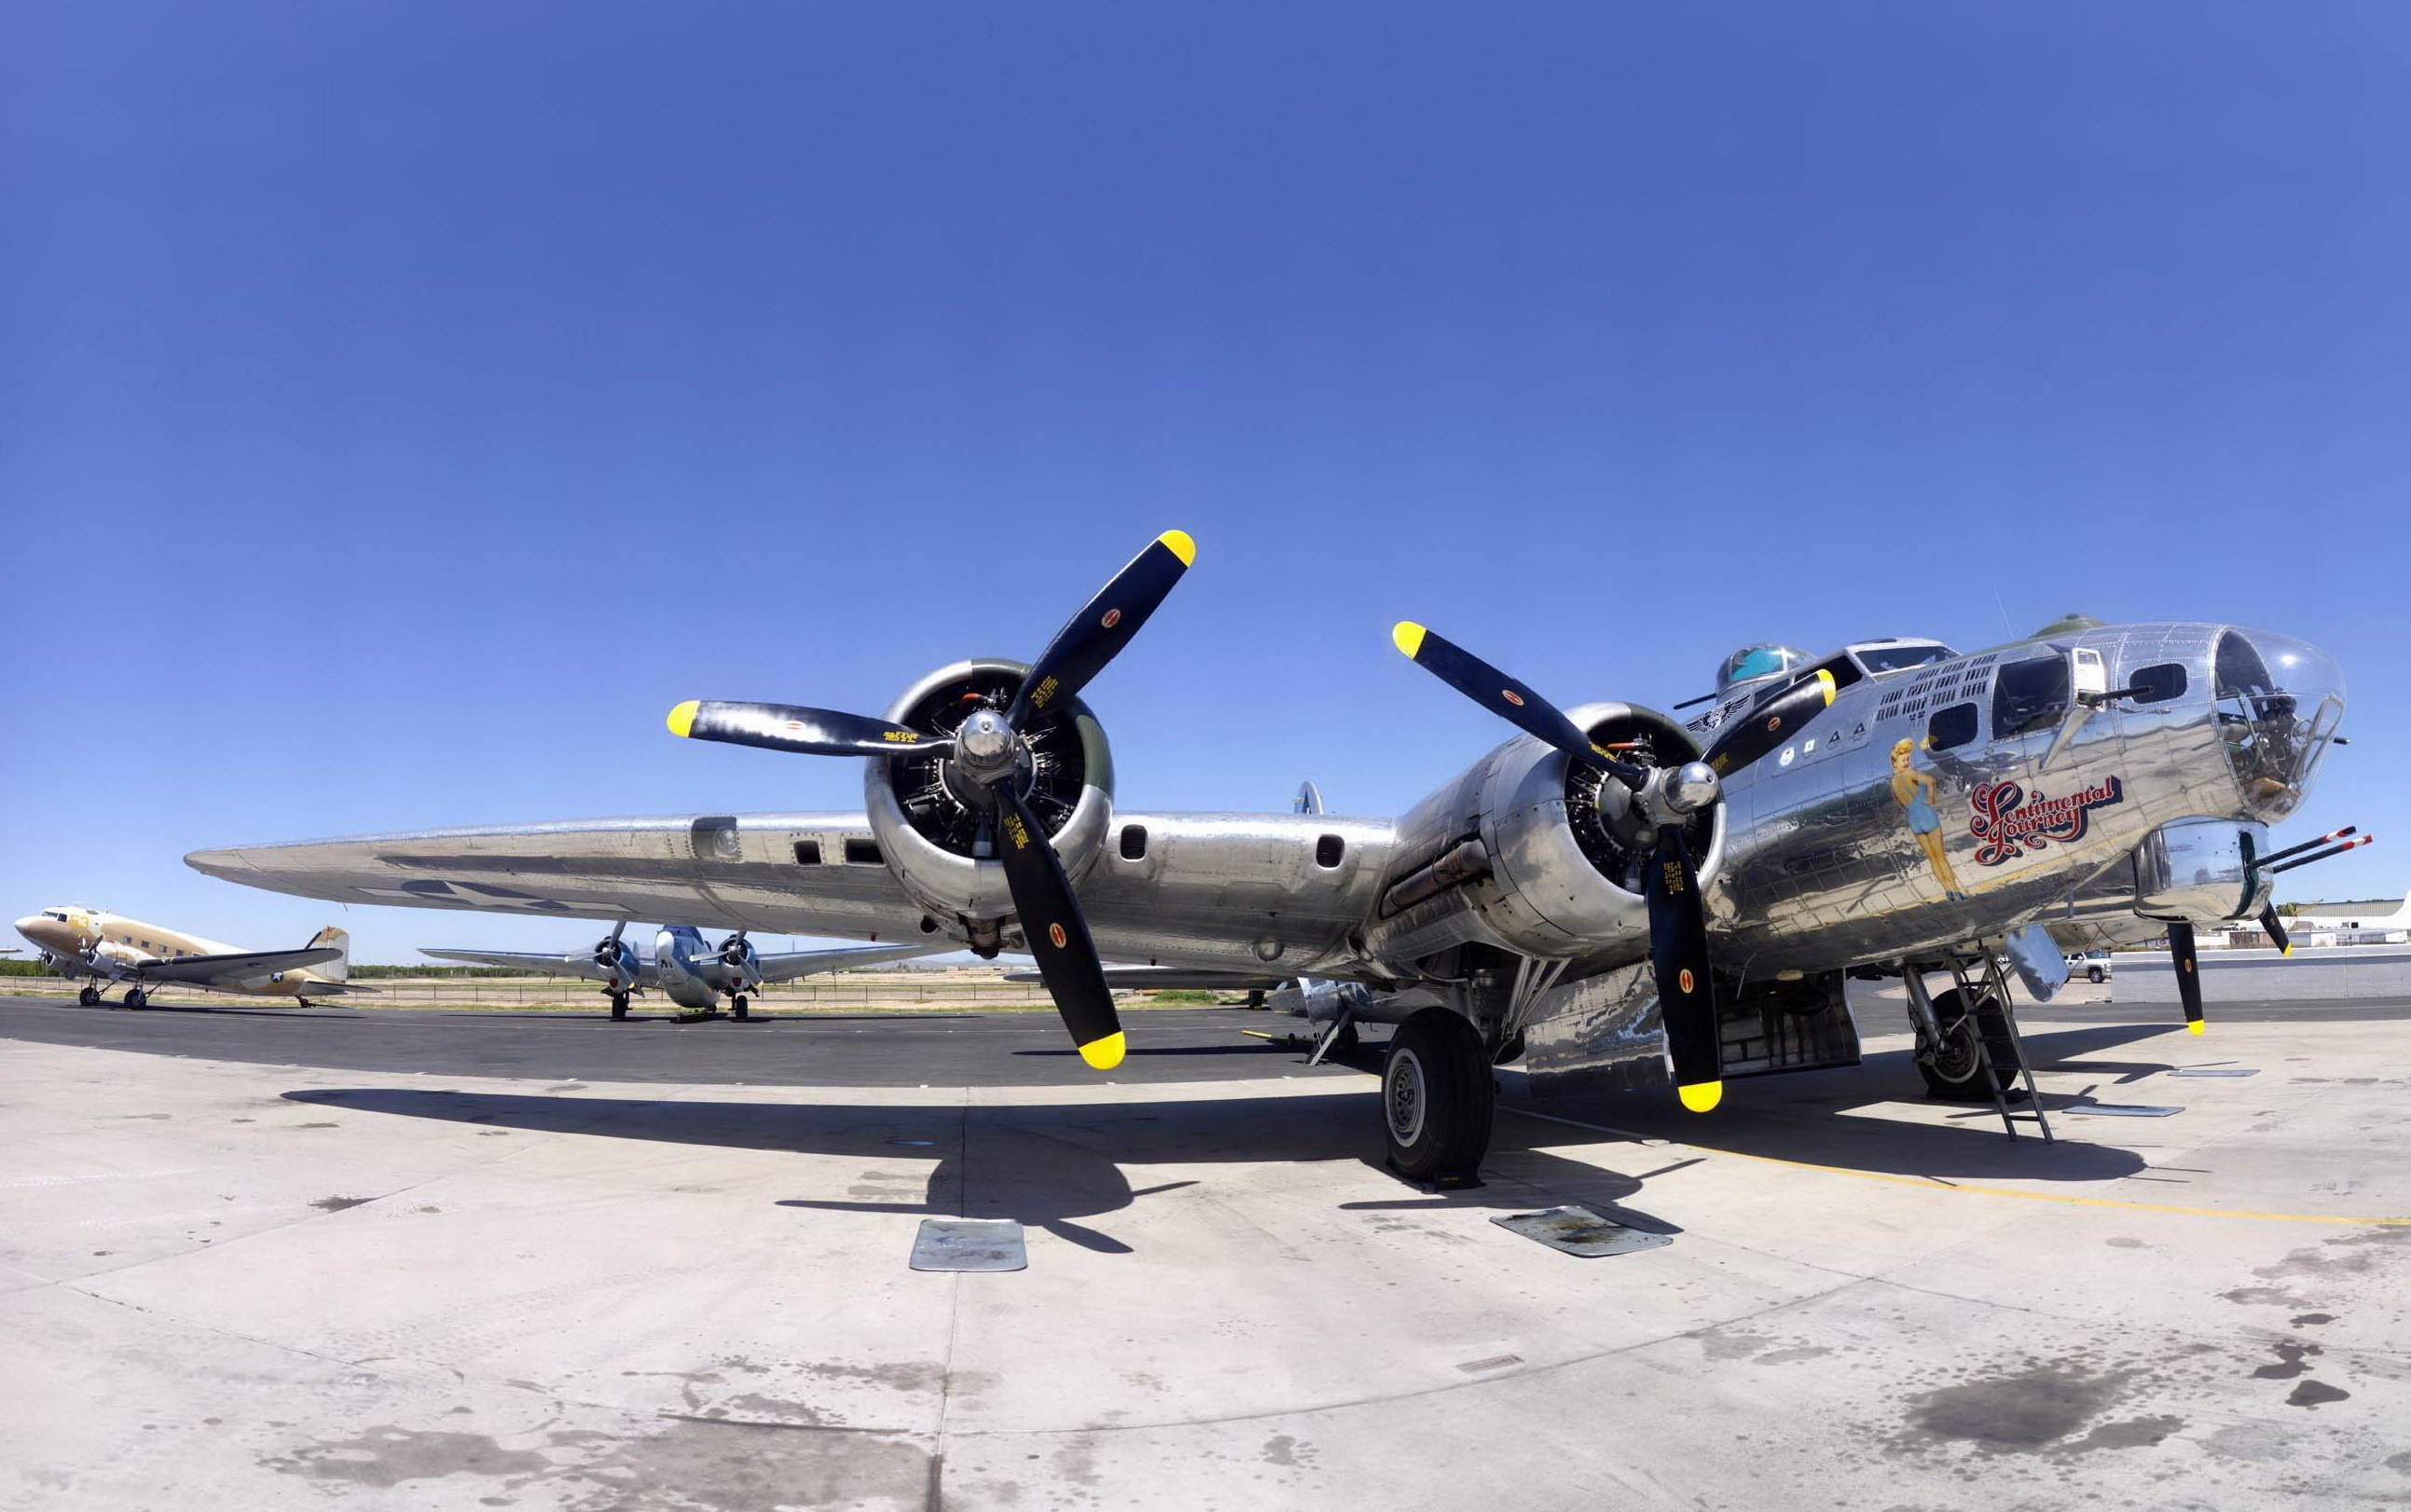 Widescreen Wallpapers: boeing b 17 flying fortress backround, 574 kB –  Axton Jones